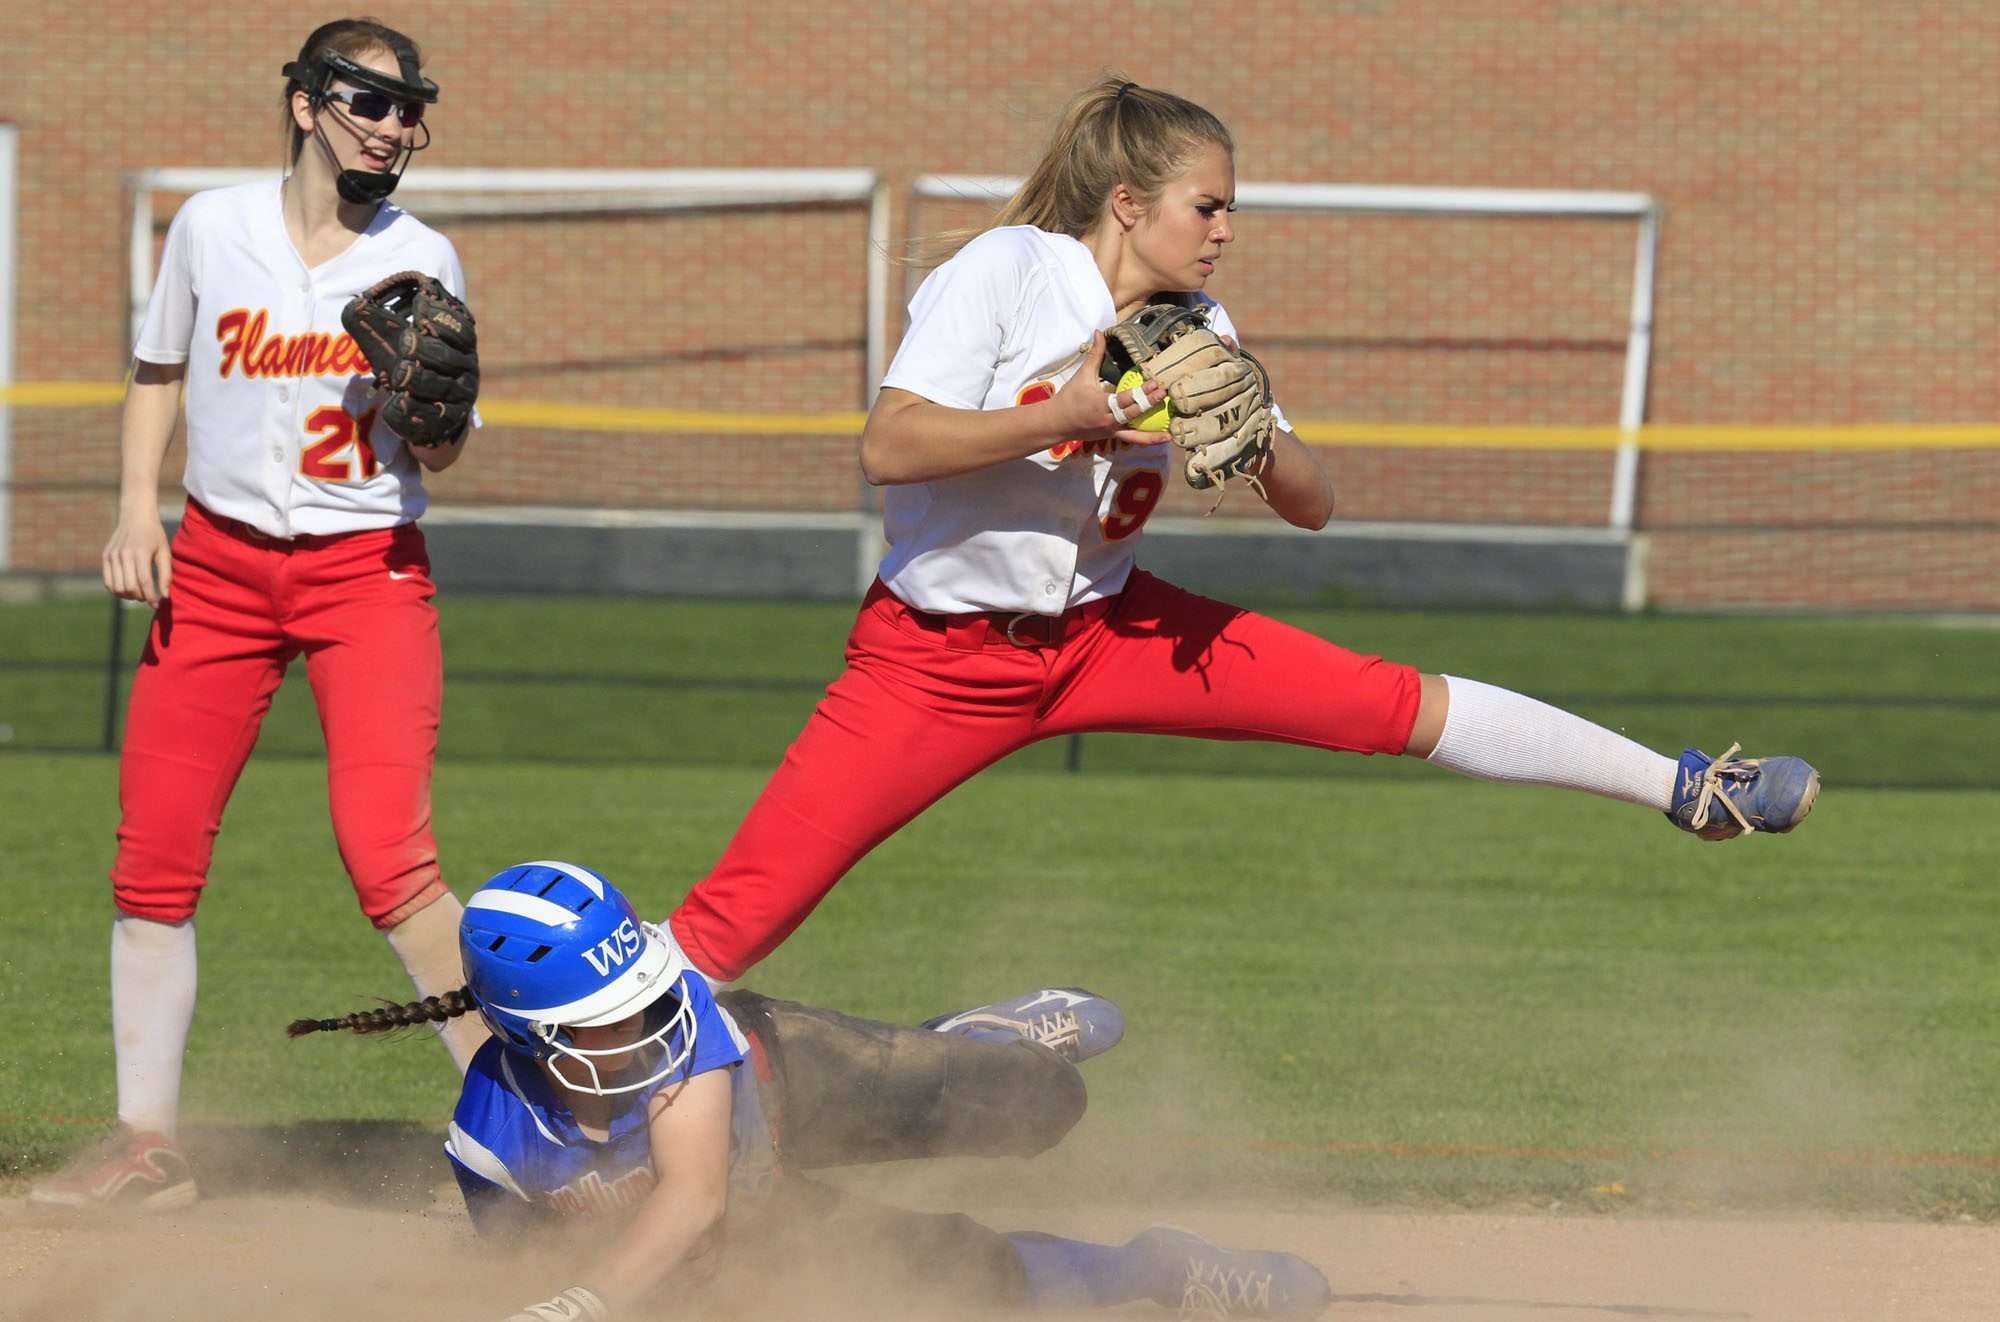 Williamsville South's Leah Czerwinski is forced out at second base by Williamsville East's Christy Mack during seventh inning action at Williamsville East high school  on Monday, May 9, 2016. (Harry Scull Jr./Buffalo News)